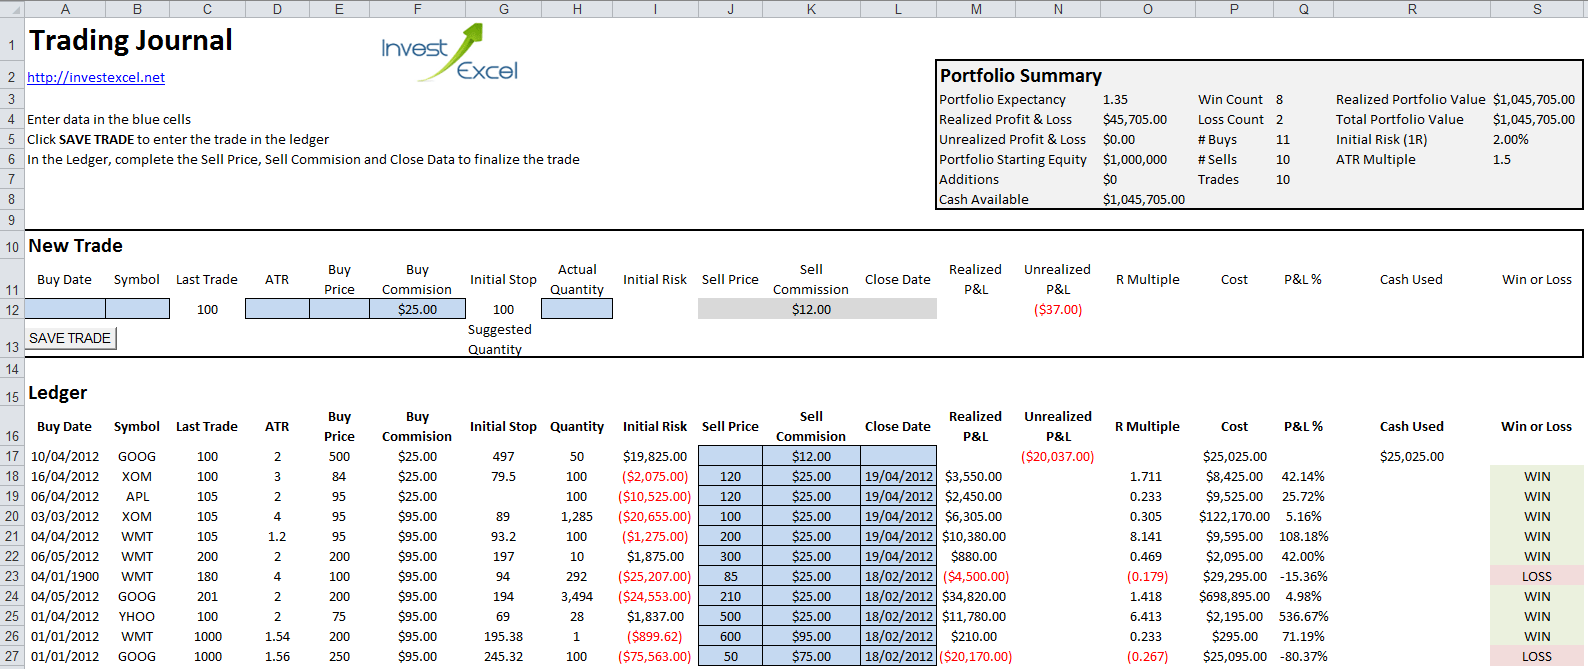 Free forex trading spreadsheet journal Best Binary Option Signals Service www.creditechcorp.com